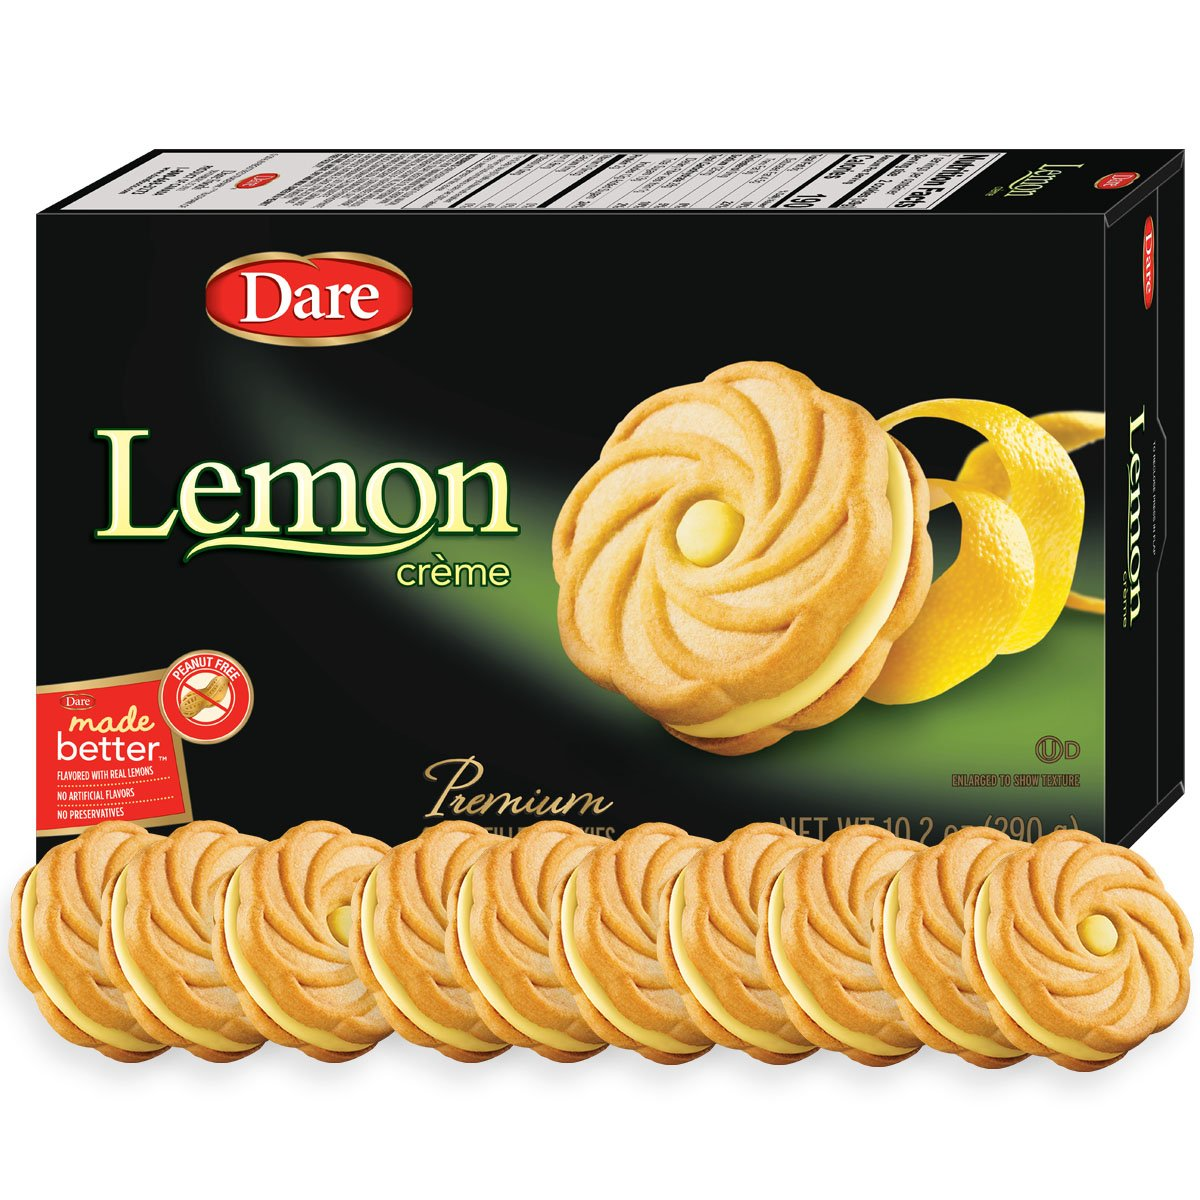 Dare Lemon Crème Cookies – Made Fresh with Real Lemon Filling and No Artificial Flavors, Peanut Free – 10.2 Ounces (Pack of 12)